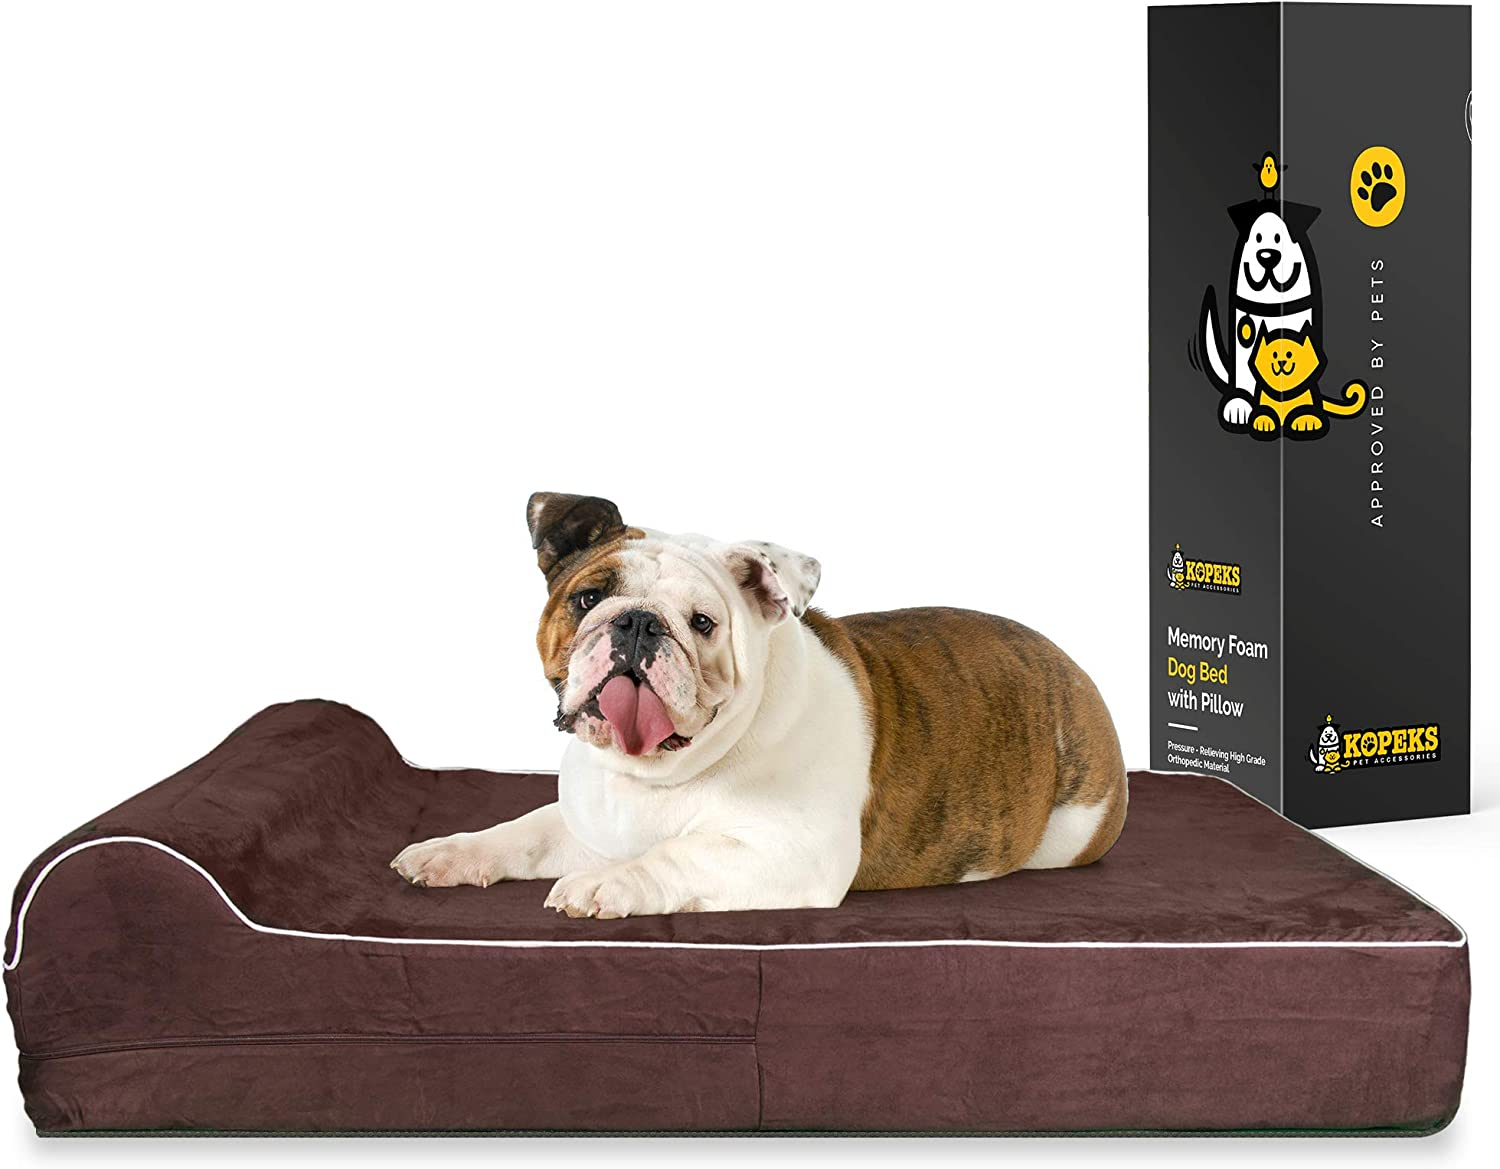 7-inch Thick High Grade Orthopedic Memory Foam Dog Bed With Pillow and Easy to Wash Removable Cover with Anti-Slip Bottom : Pet Supplies